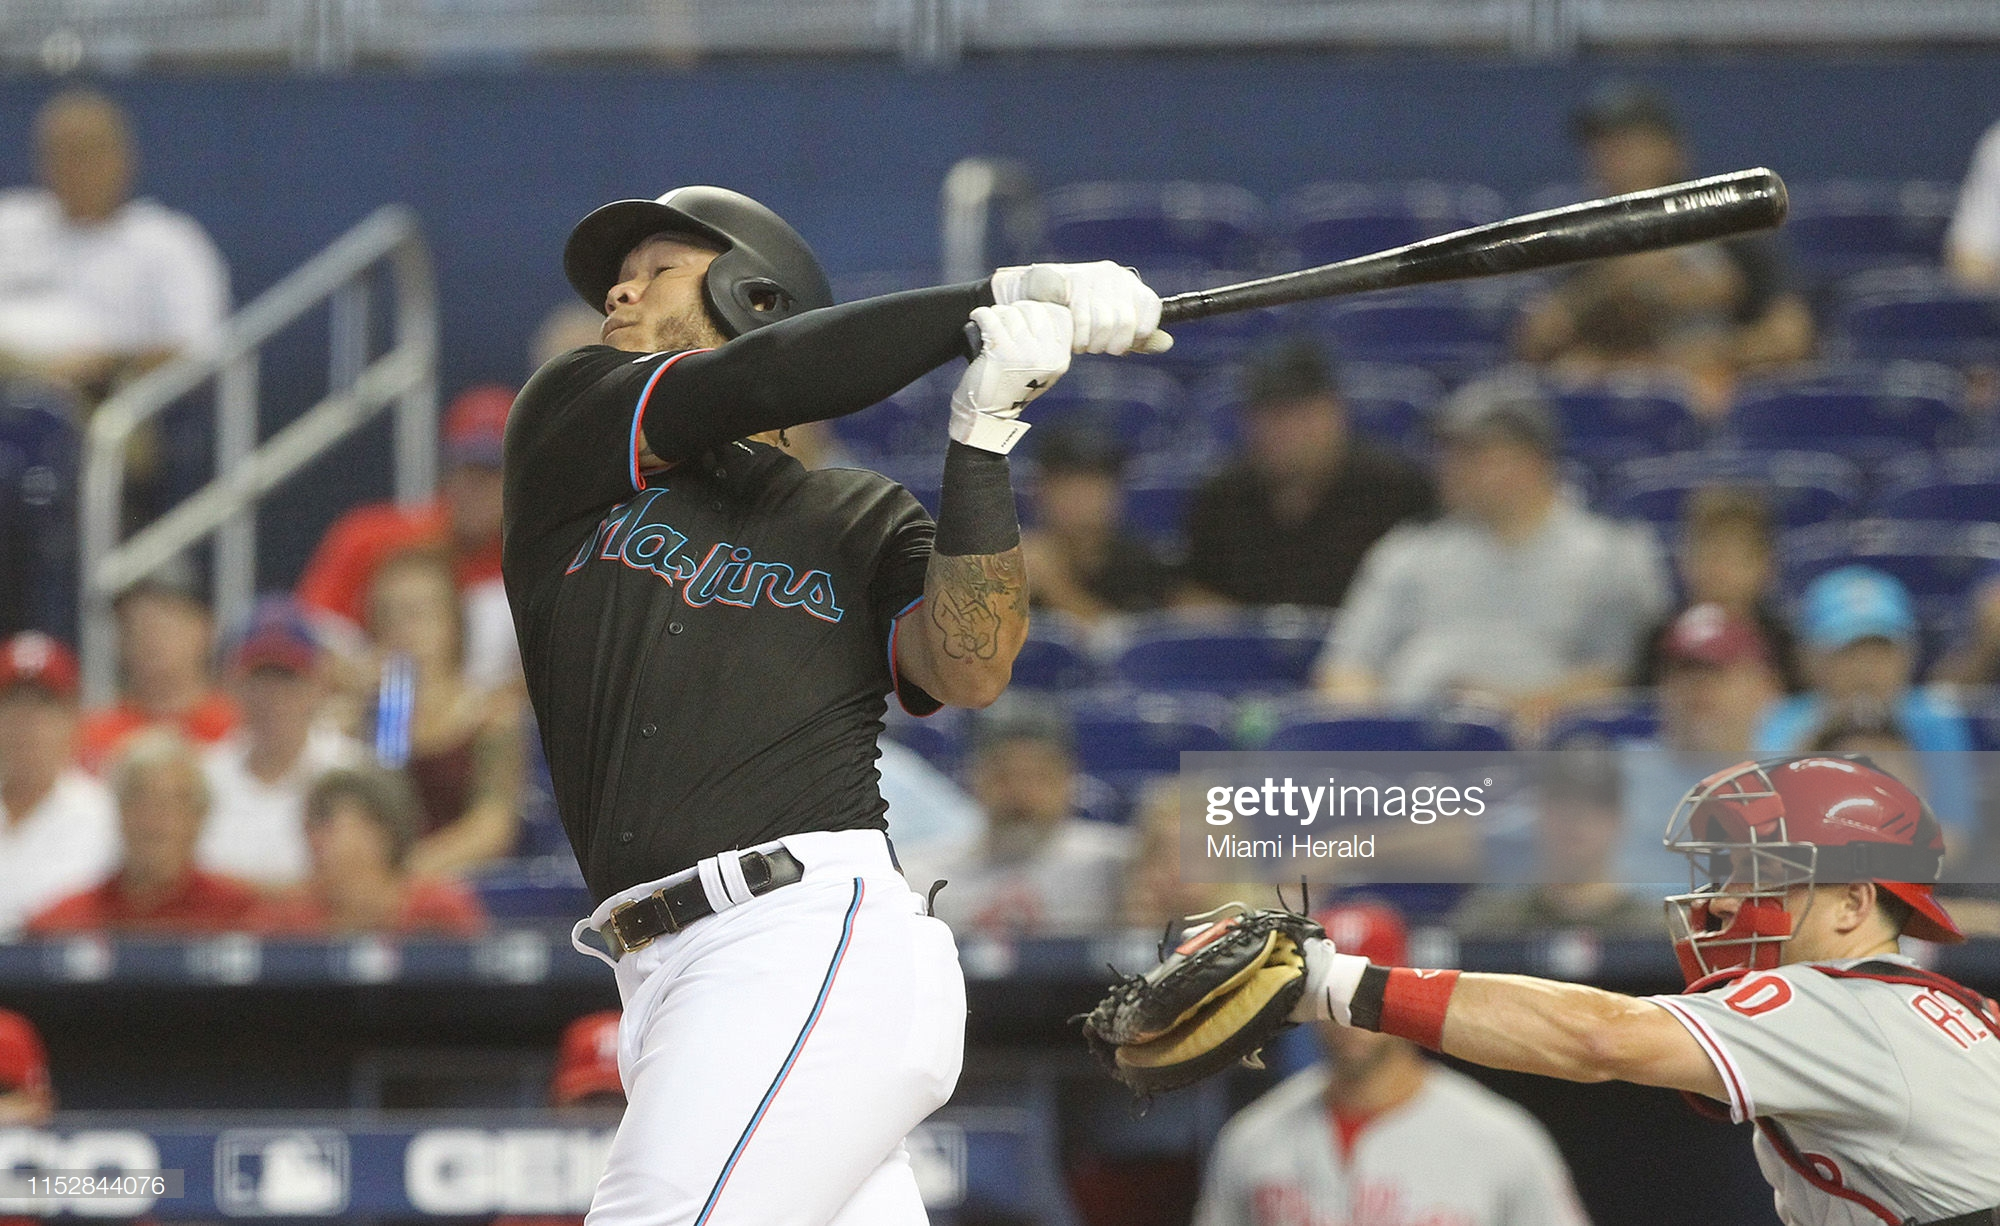 The Miami Marlins' Miguel Harold Ramirez hits a single in the first inning against the Philadelphia Phillies at Marlins Park in Miami on Saturday, June 29, 2019. (Pedro Portal/Miami Herald/TNS via Getty Images)